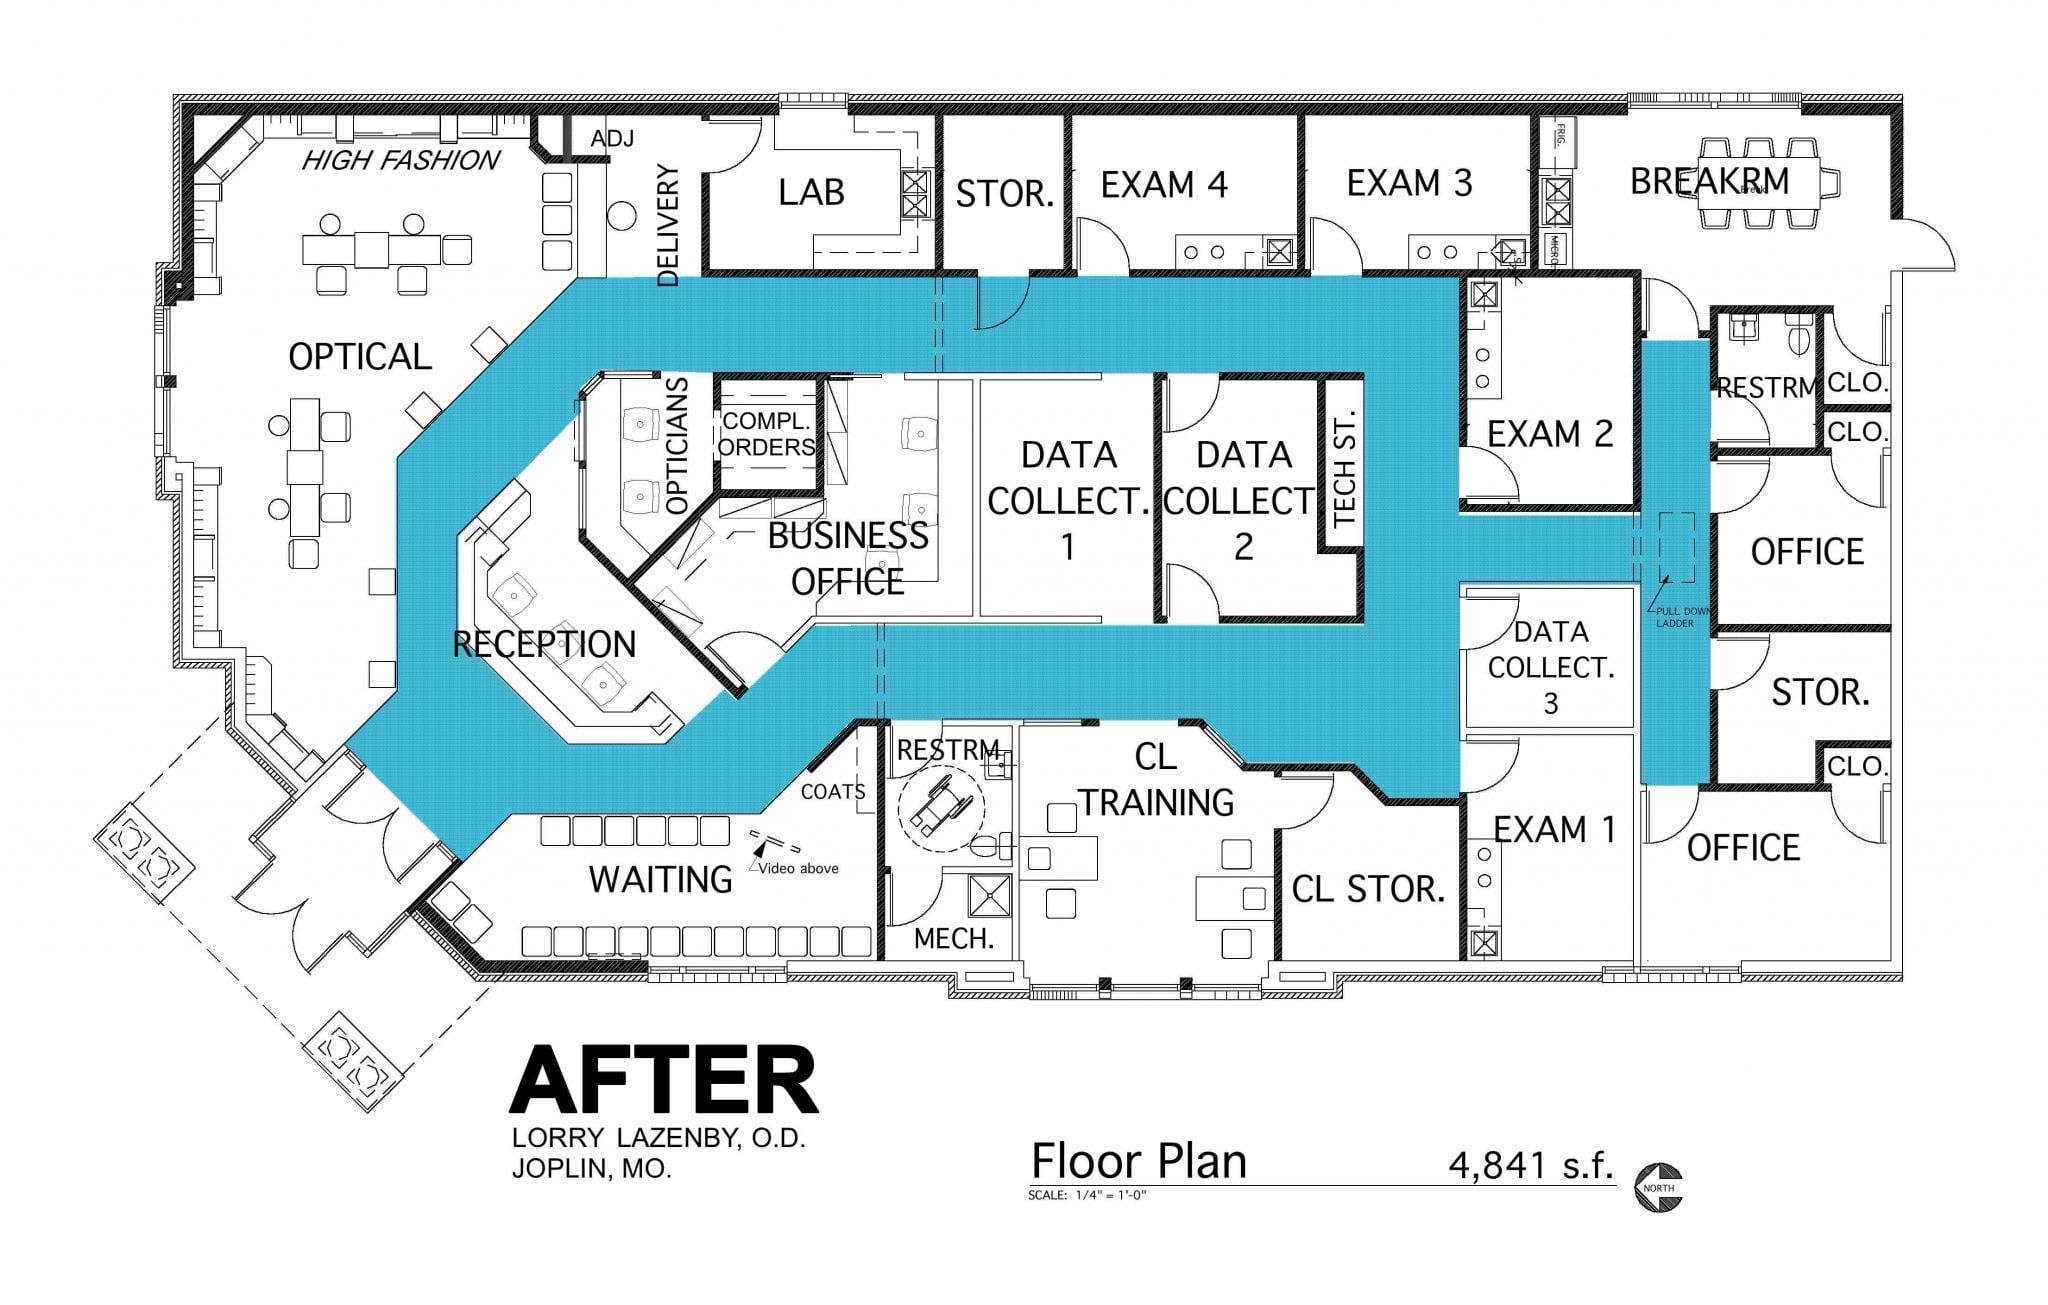 Business Office Design Layout Office Floor Plan Floor Plan Design Medical Office Design